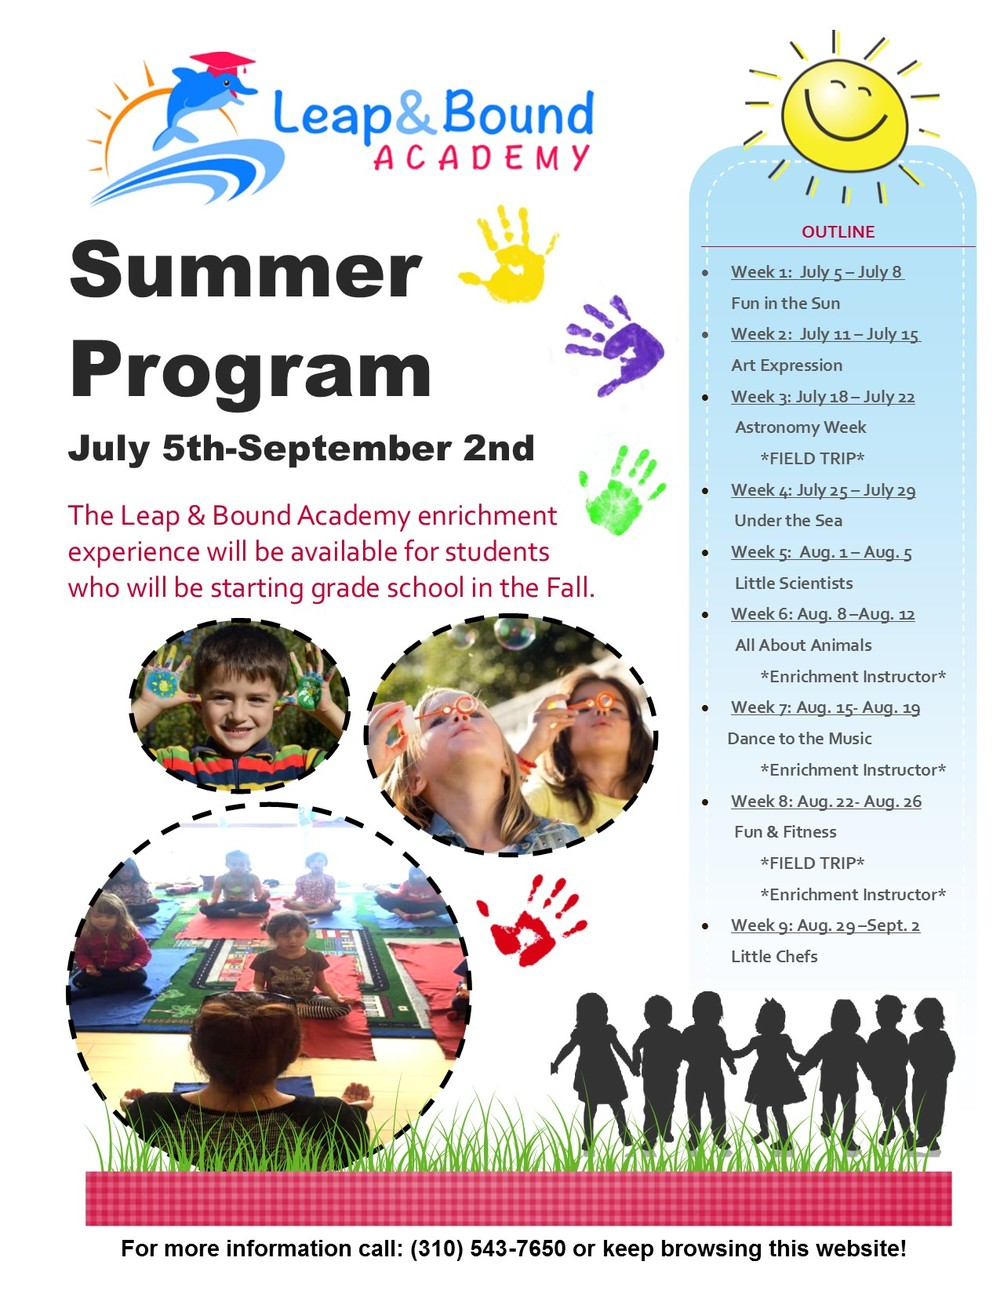 Summer Program     July 5th-September 2nd    The Leap & Bound Academy enrichment experience will be available for students who will be starting grade school in the Fall.          3.00   0.50   8000001               ·   Week 1:  July 5 – July 8 -   Fun in the Sun    ·   Week 2:  July 11 – July 15 -   Art Expression    ·   Week 3: July 18 – July 22   -   Astronomy Week   *FIELD TRIP*    ·   Week 4: July 25 – July 29 -   Under the Sea    ·   Week 5:  Aug. 1 – Aug. 5   -   Little Scientist    ·   Week 6: Aug. 8 –Aug. 12   -   All About Animals   *Enrichment Instructor*    ·   Week 7: Aug. 15- Aug. 19   -     Dance to the Music   *Enrichment Instructor*    ·   Week 8: Aug. 22- Aug. 26   -   Fun & Fitness   *FIELD TRIP*   *Enrichment Instructor*    ·   Week 9: Aug. 29 –Sept. 2   -   Little Chefs